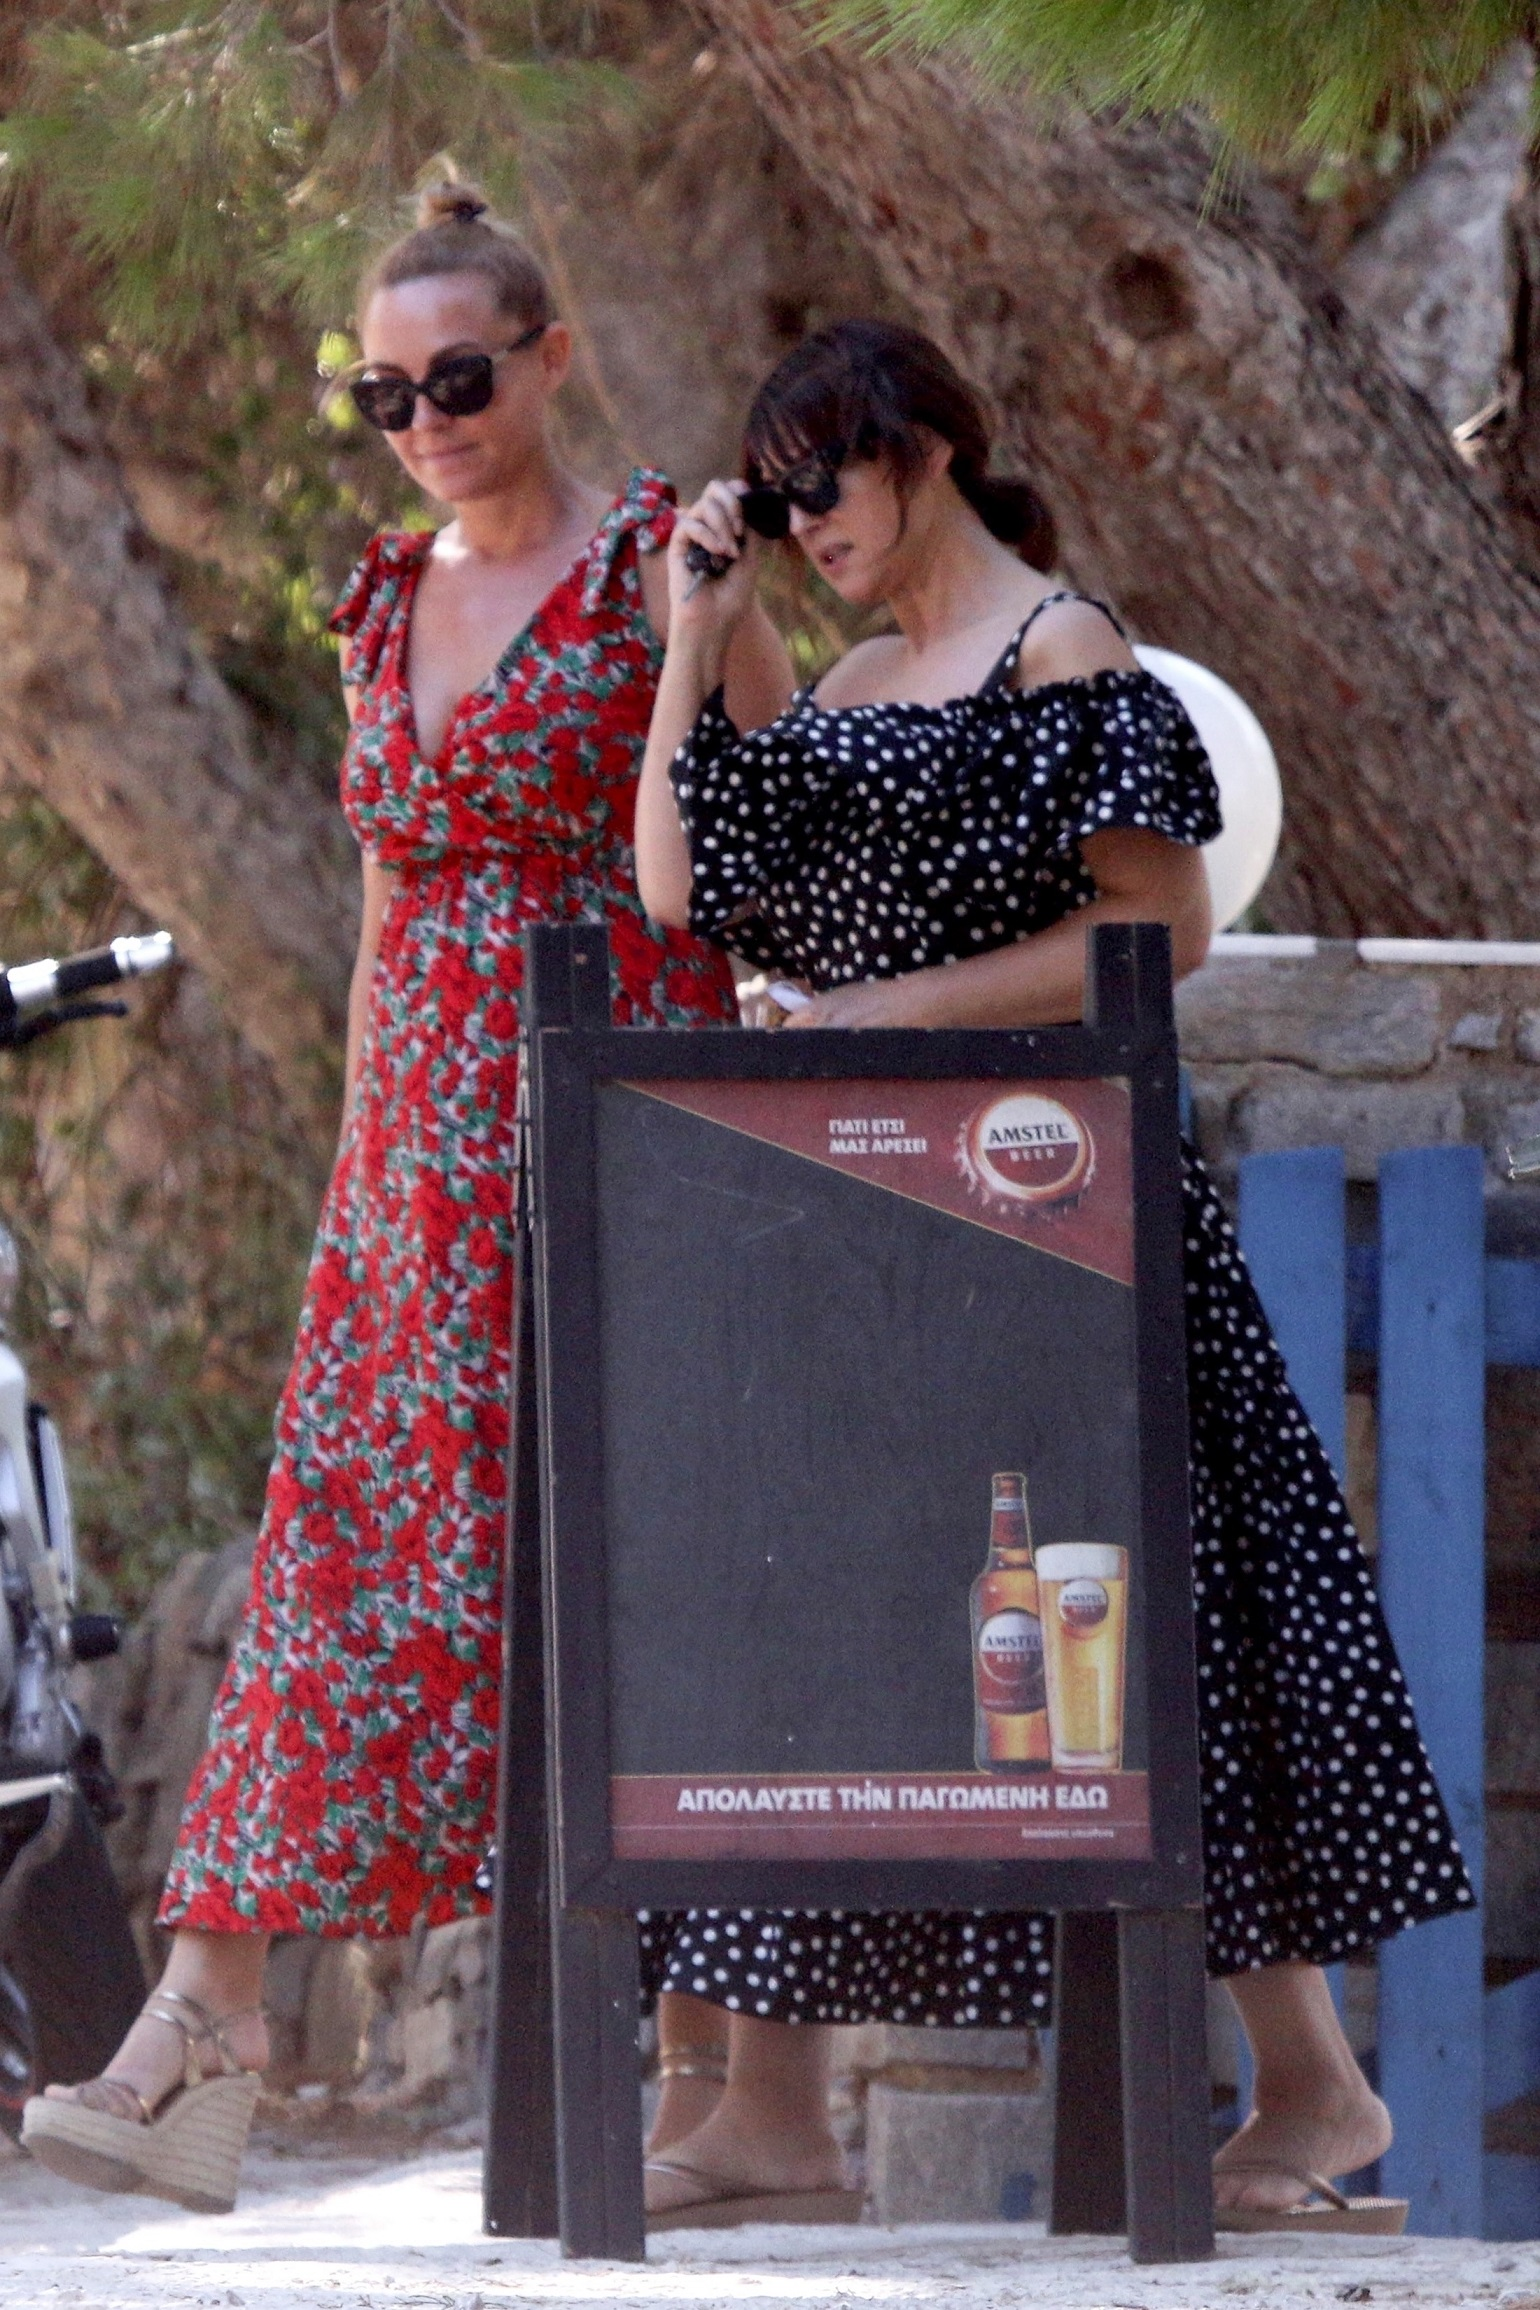 Paros, GREECE  - *EXCLUSIVE*  - Italian actress and model Monica Bellucci is enjoying her summer vacation break in Paros Islands, Greece.  BACKGRID USA 3 AUGUST 2020,Image: 549532421, License: Rights-managed, Restrictions: RIGHTS: WORLDWIDE EXCEPT IN GREECE, Model Release: no, Credit line: karabatsispavlos / BACKGRID / Backgrid USA / Profimedia